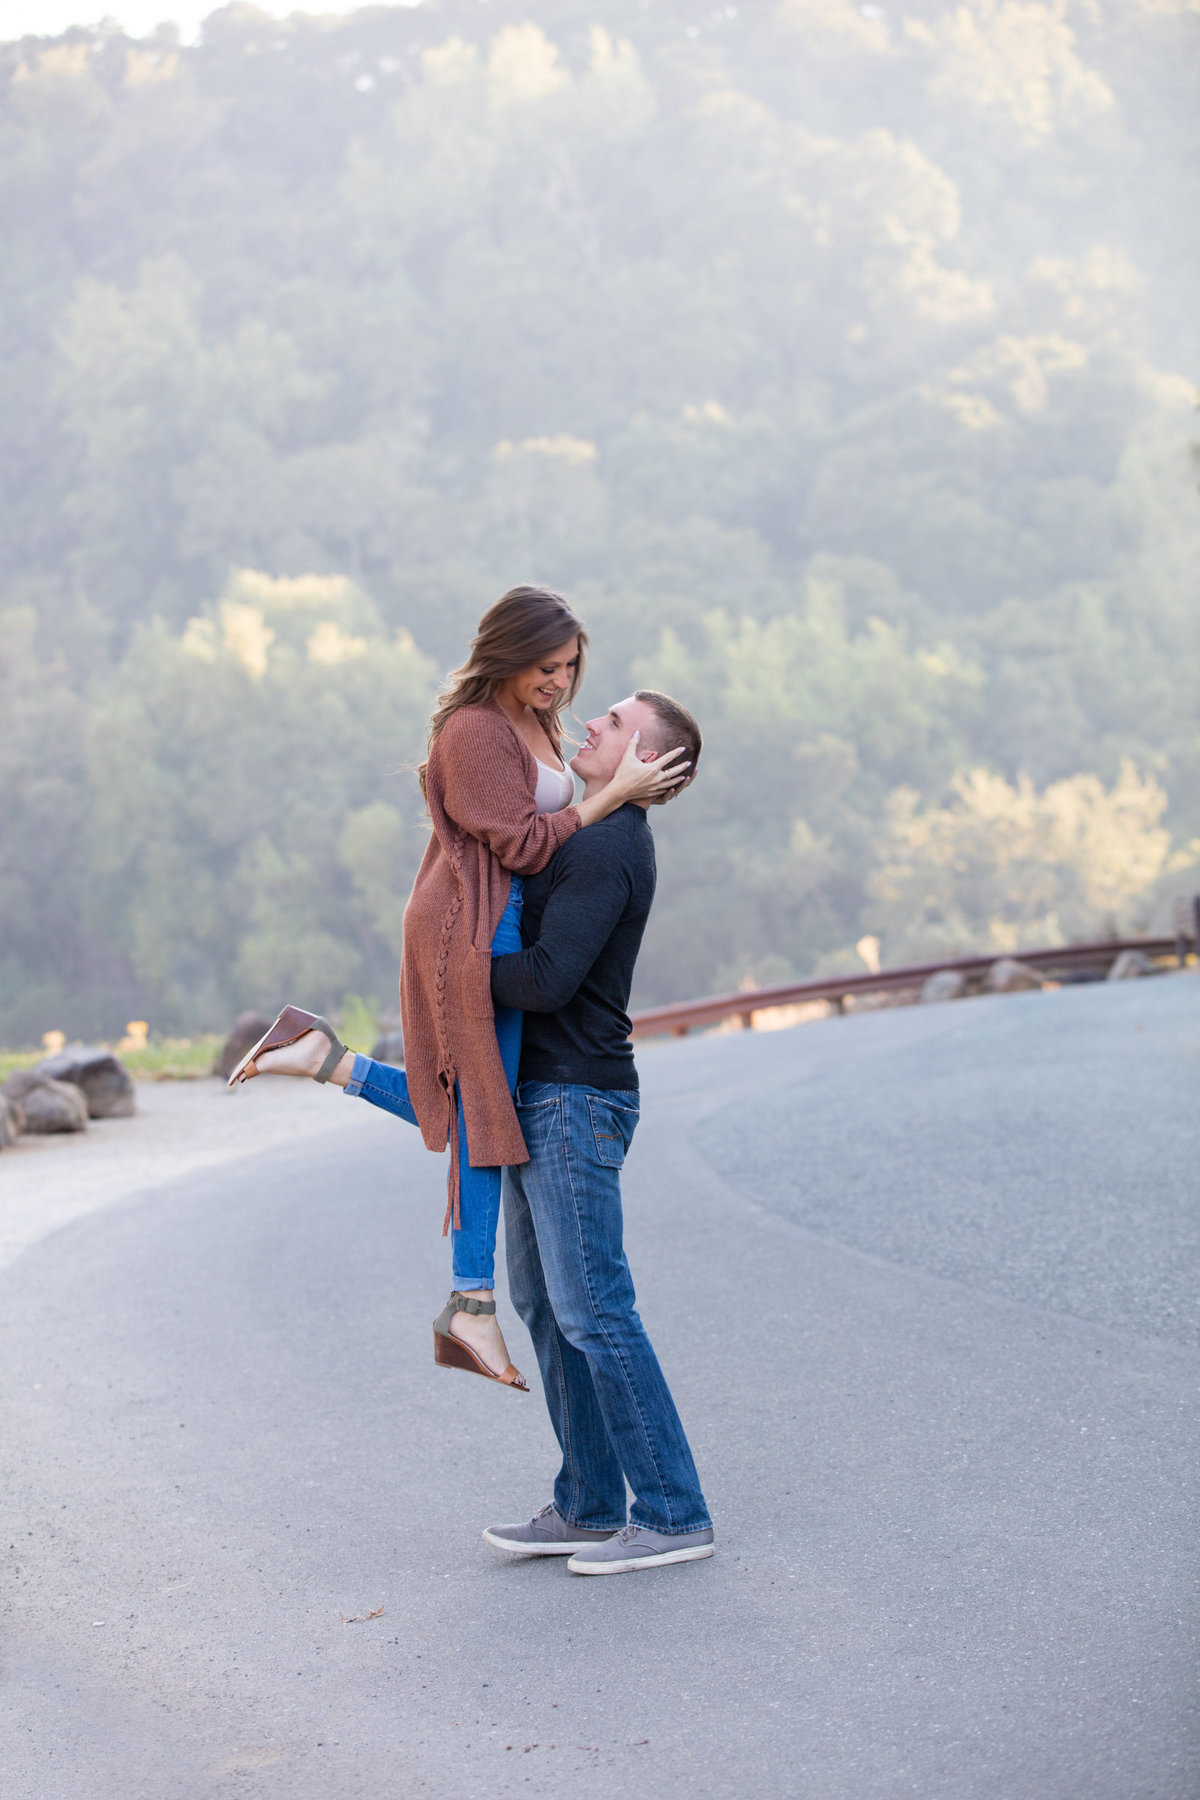 Palo Alto Foothills Park Engagement Photography on a Beautiful Lake